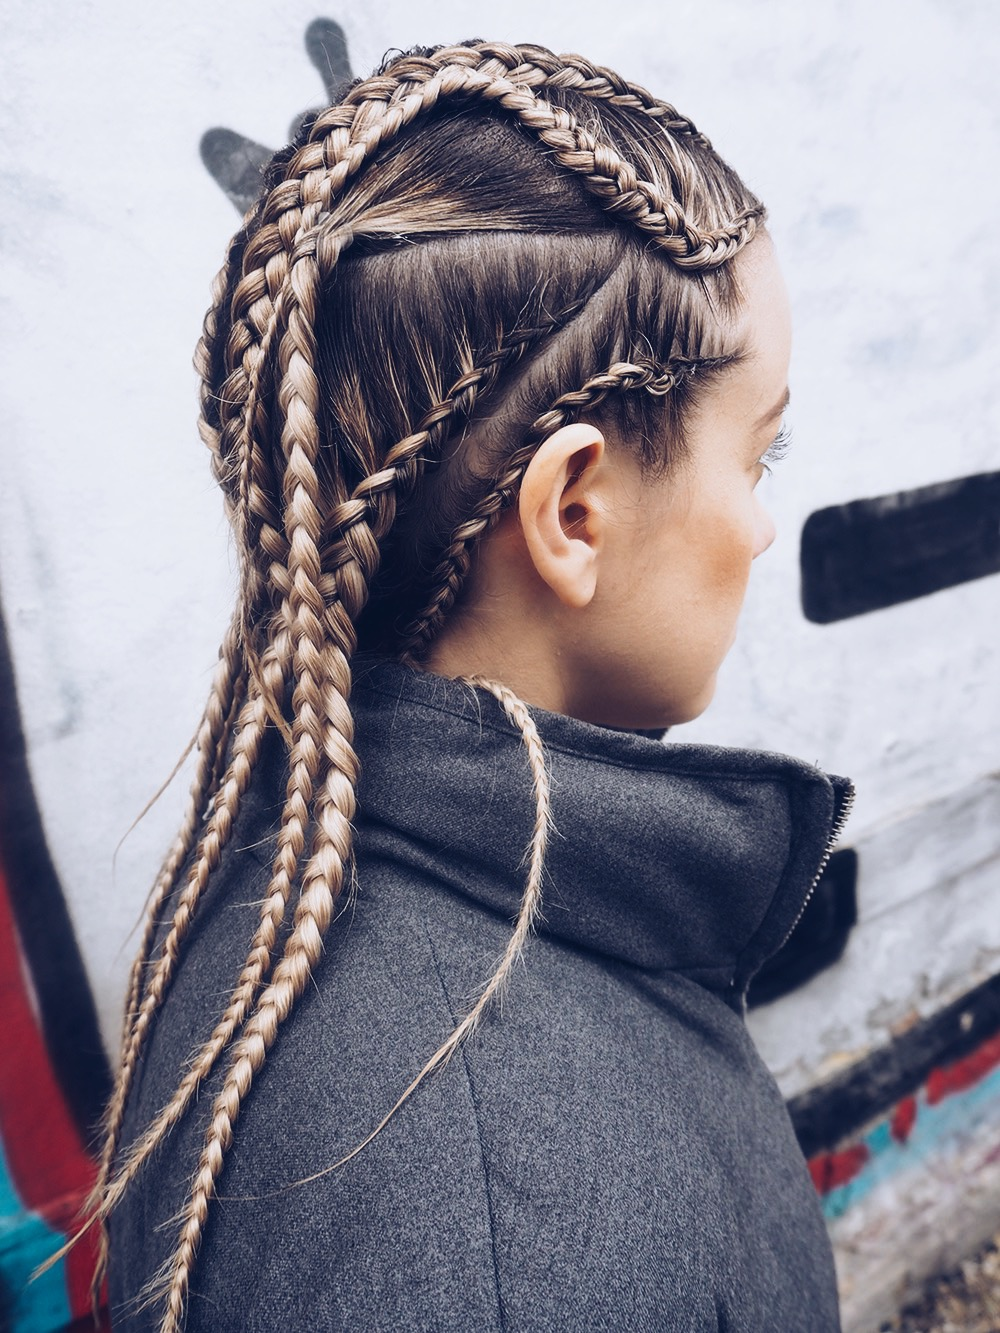 Cool Braids Vintage Guide By Joicy Muniz